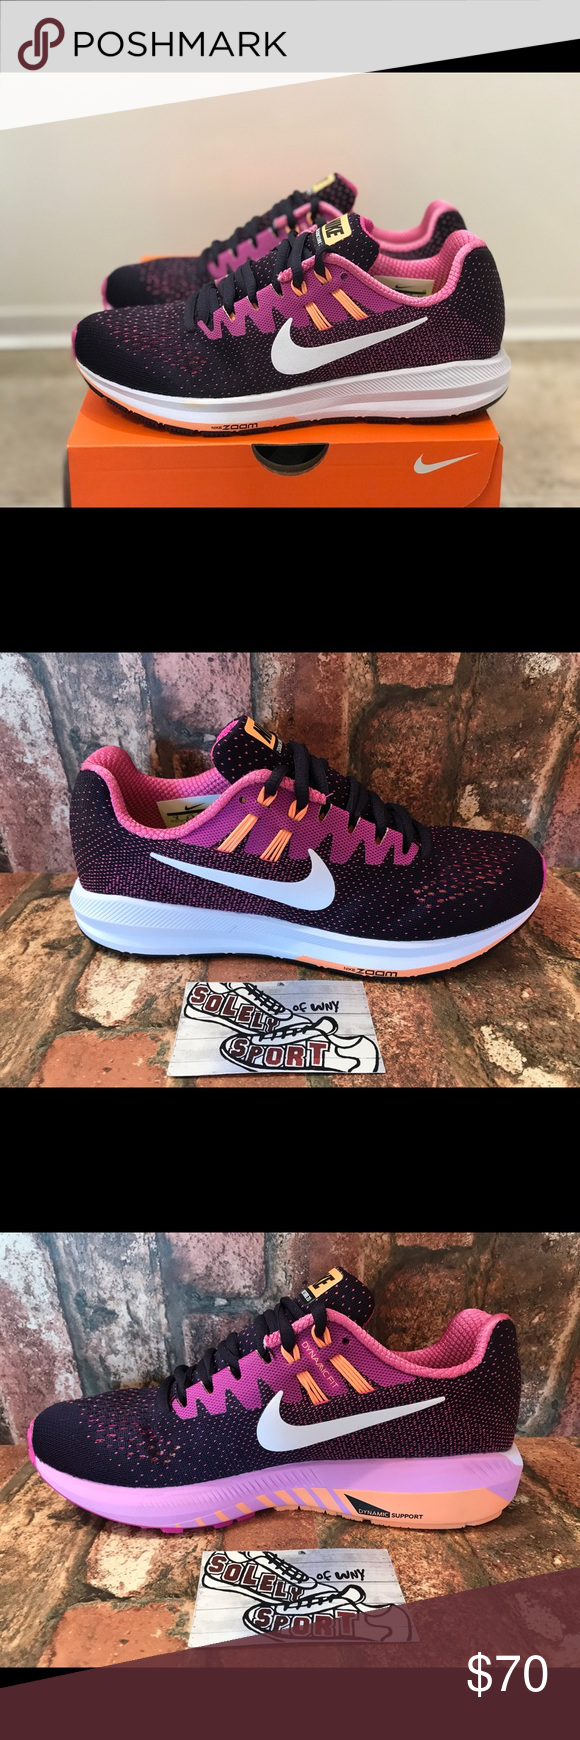 5033a433d6d66 Womens Nike Air Zoom Structure 20 Running Purple Brand - Nike Style - Zoom  Structure 20